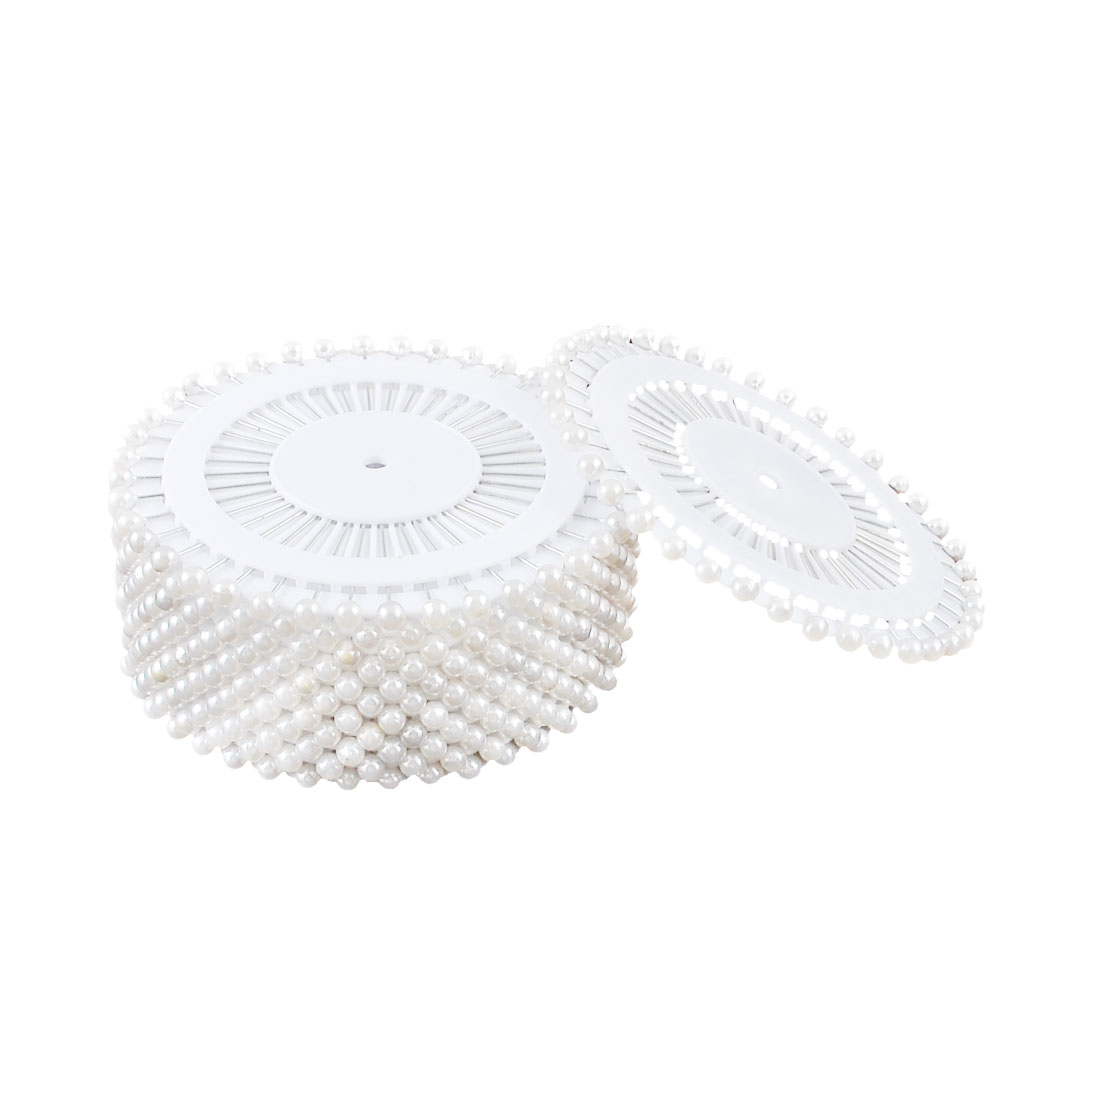 Imitation Pearl Head Clothing Corsage Locating Sewing Pin Silver Tone White 500 Pcs